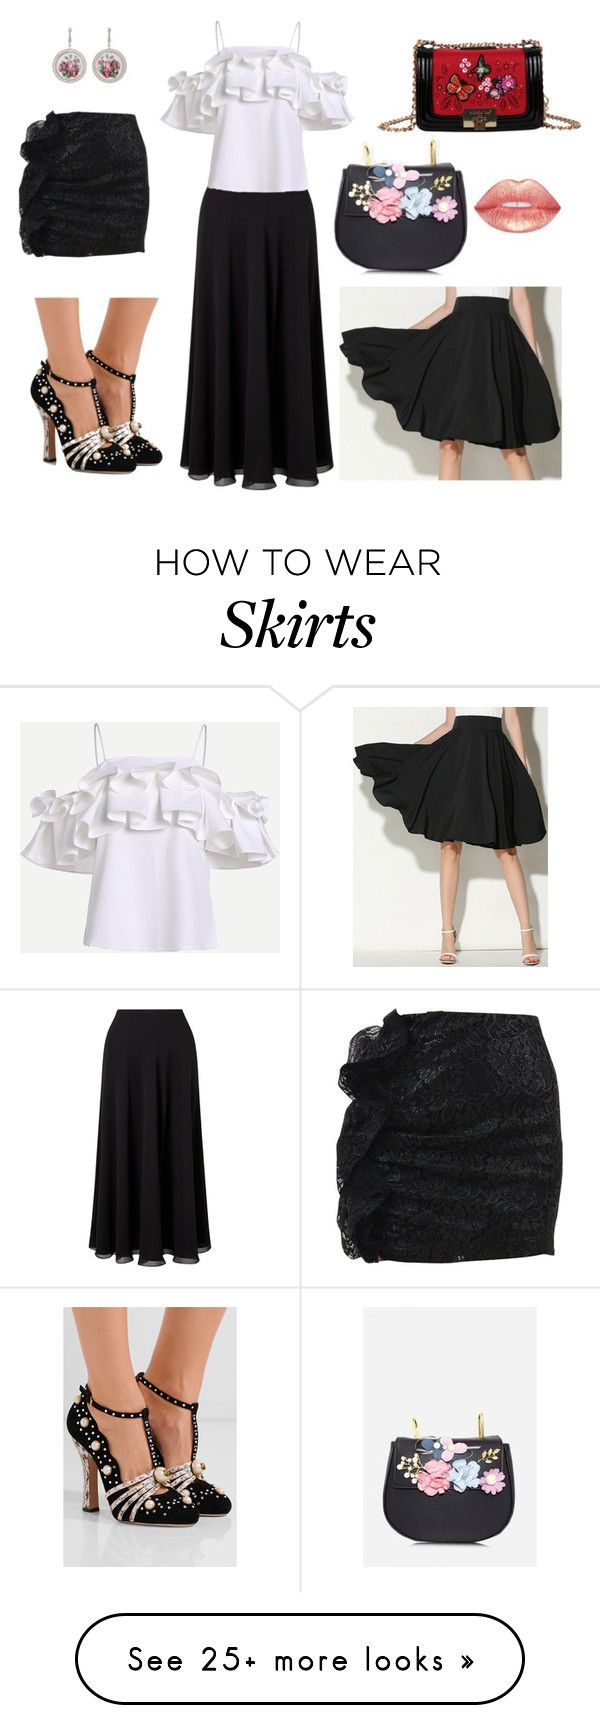 """1 top and heels 2 bag and 3 skirts"" by boglarka-voros on Polyvore featuring Jacques Vert, MSGM, WithChic, Nicole Lee and Gucci"